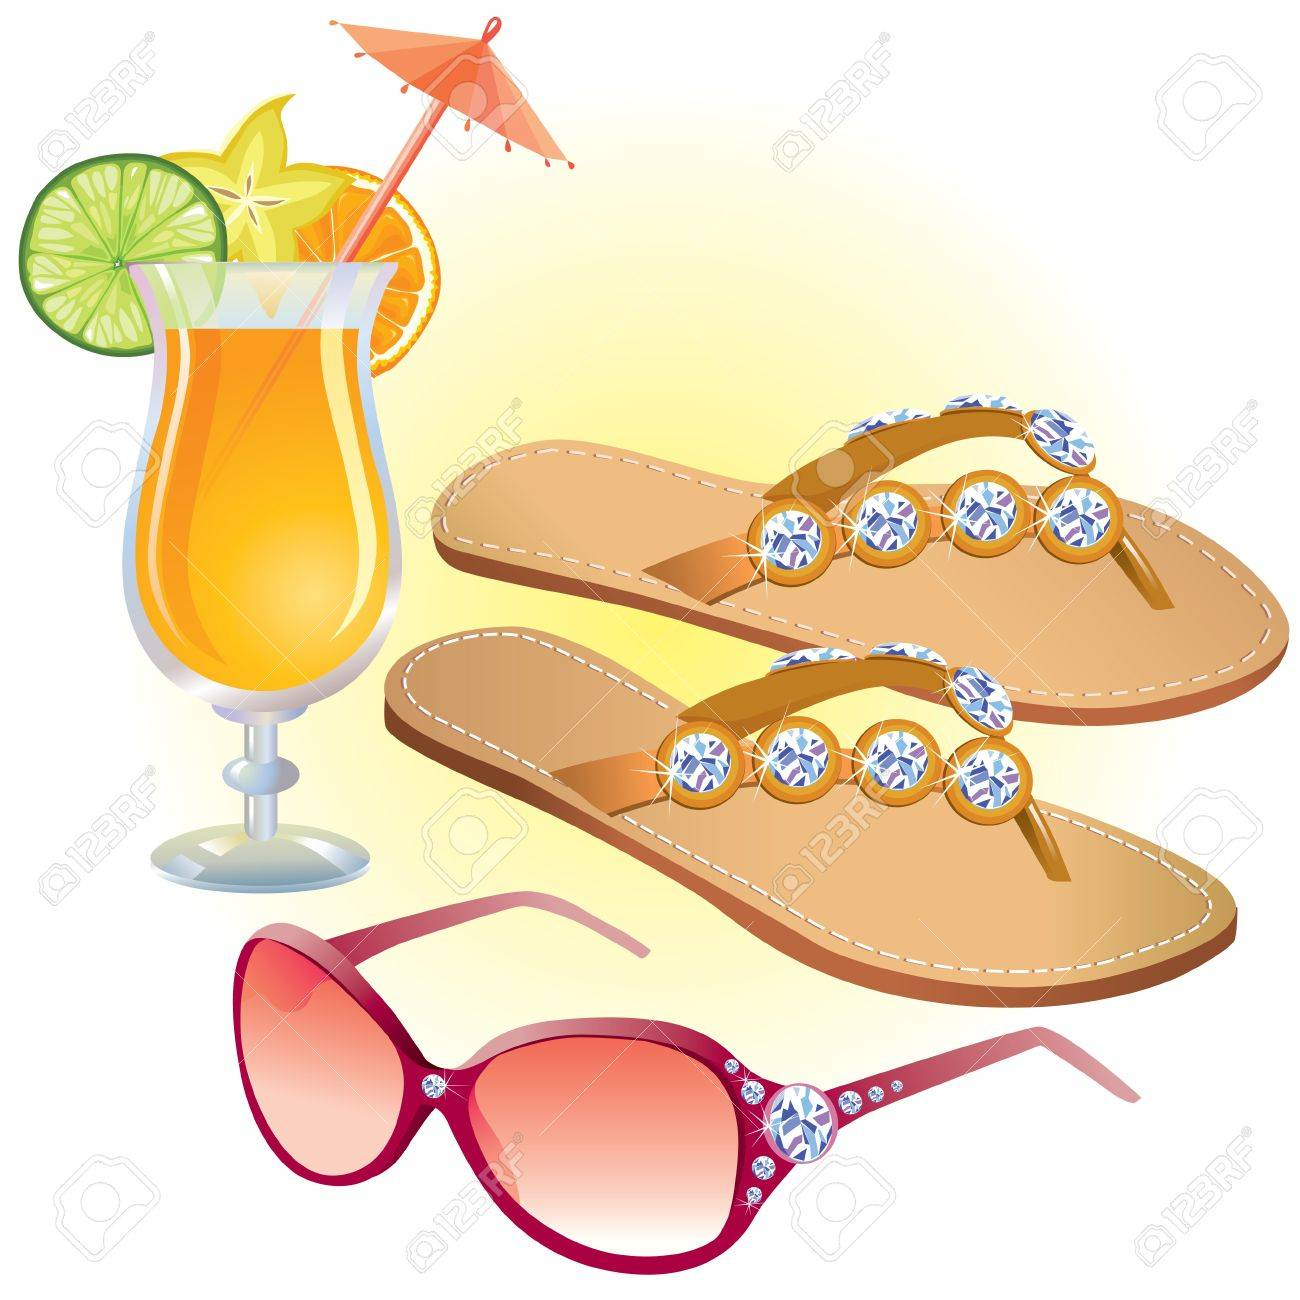 Beach accessories Stock Vector - 13070107